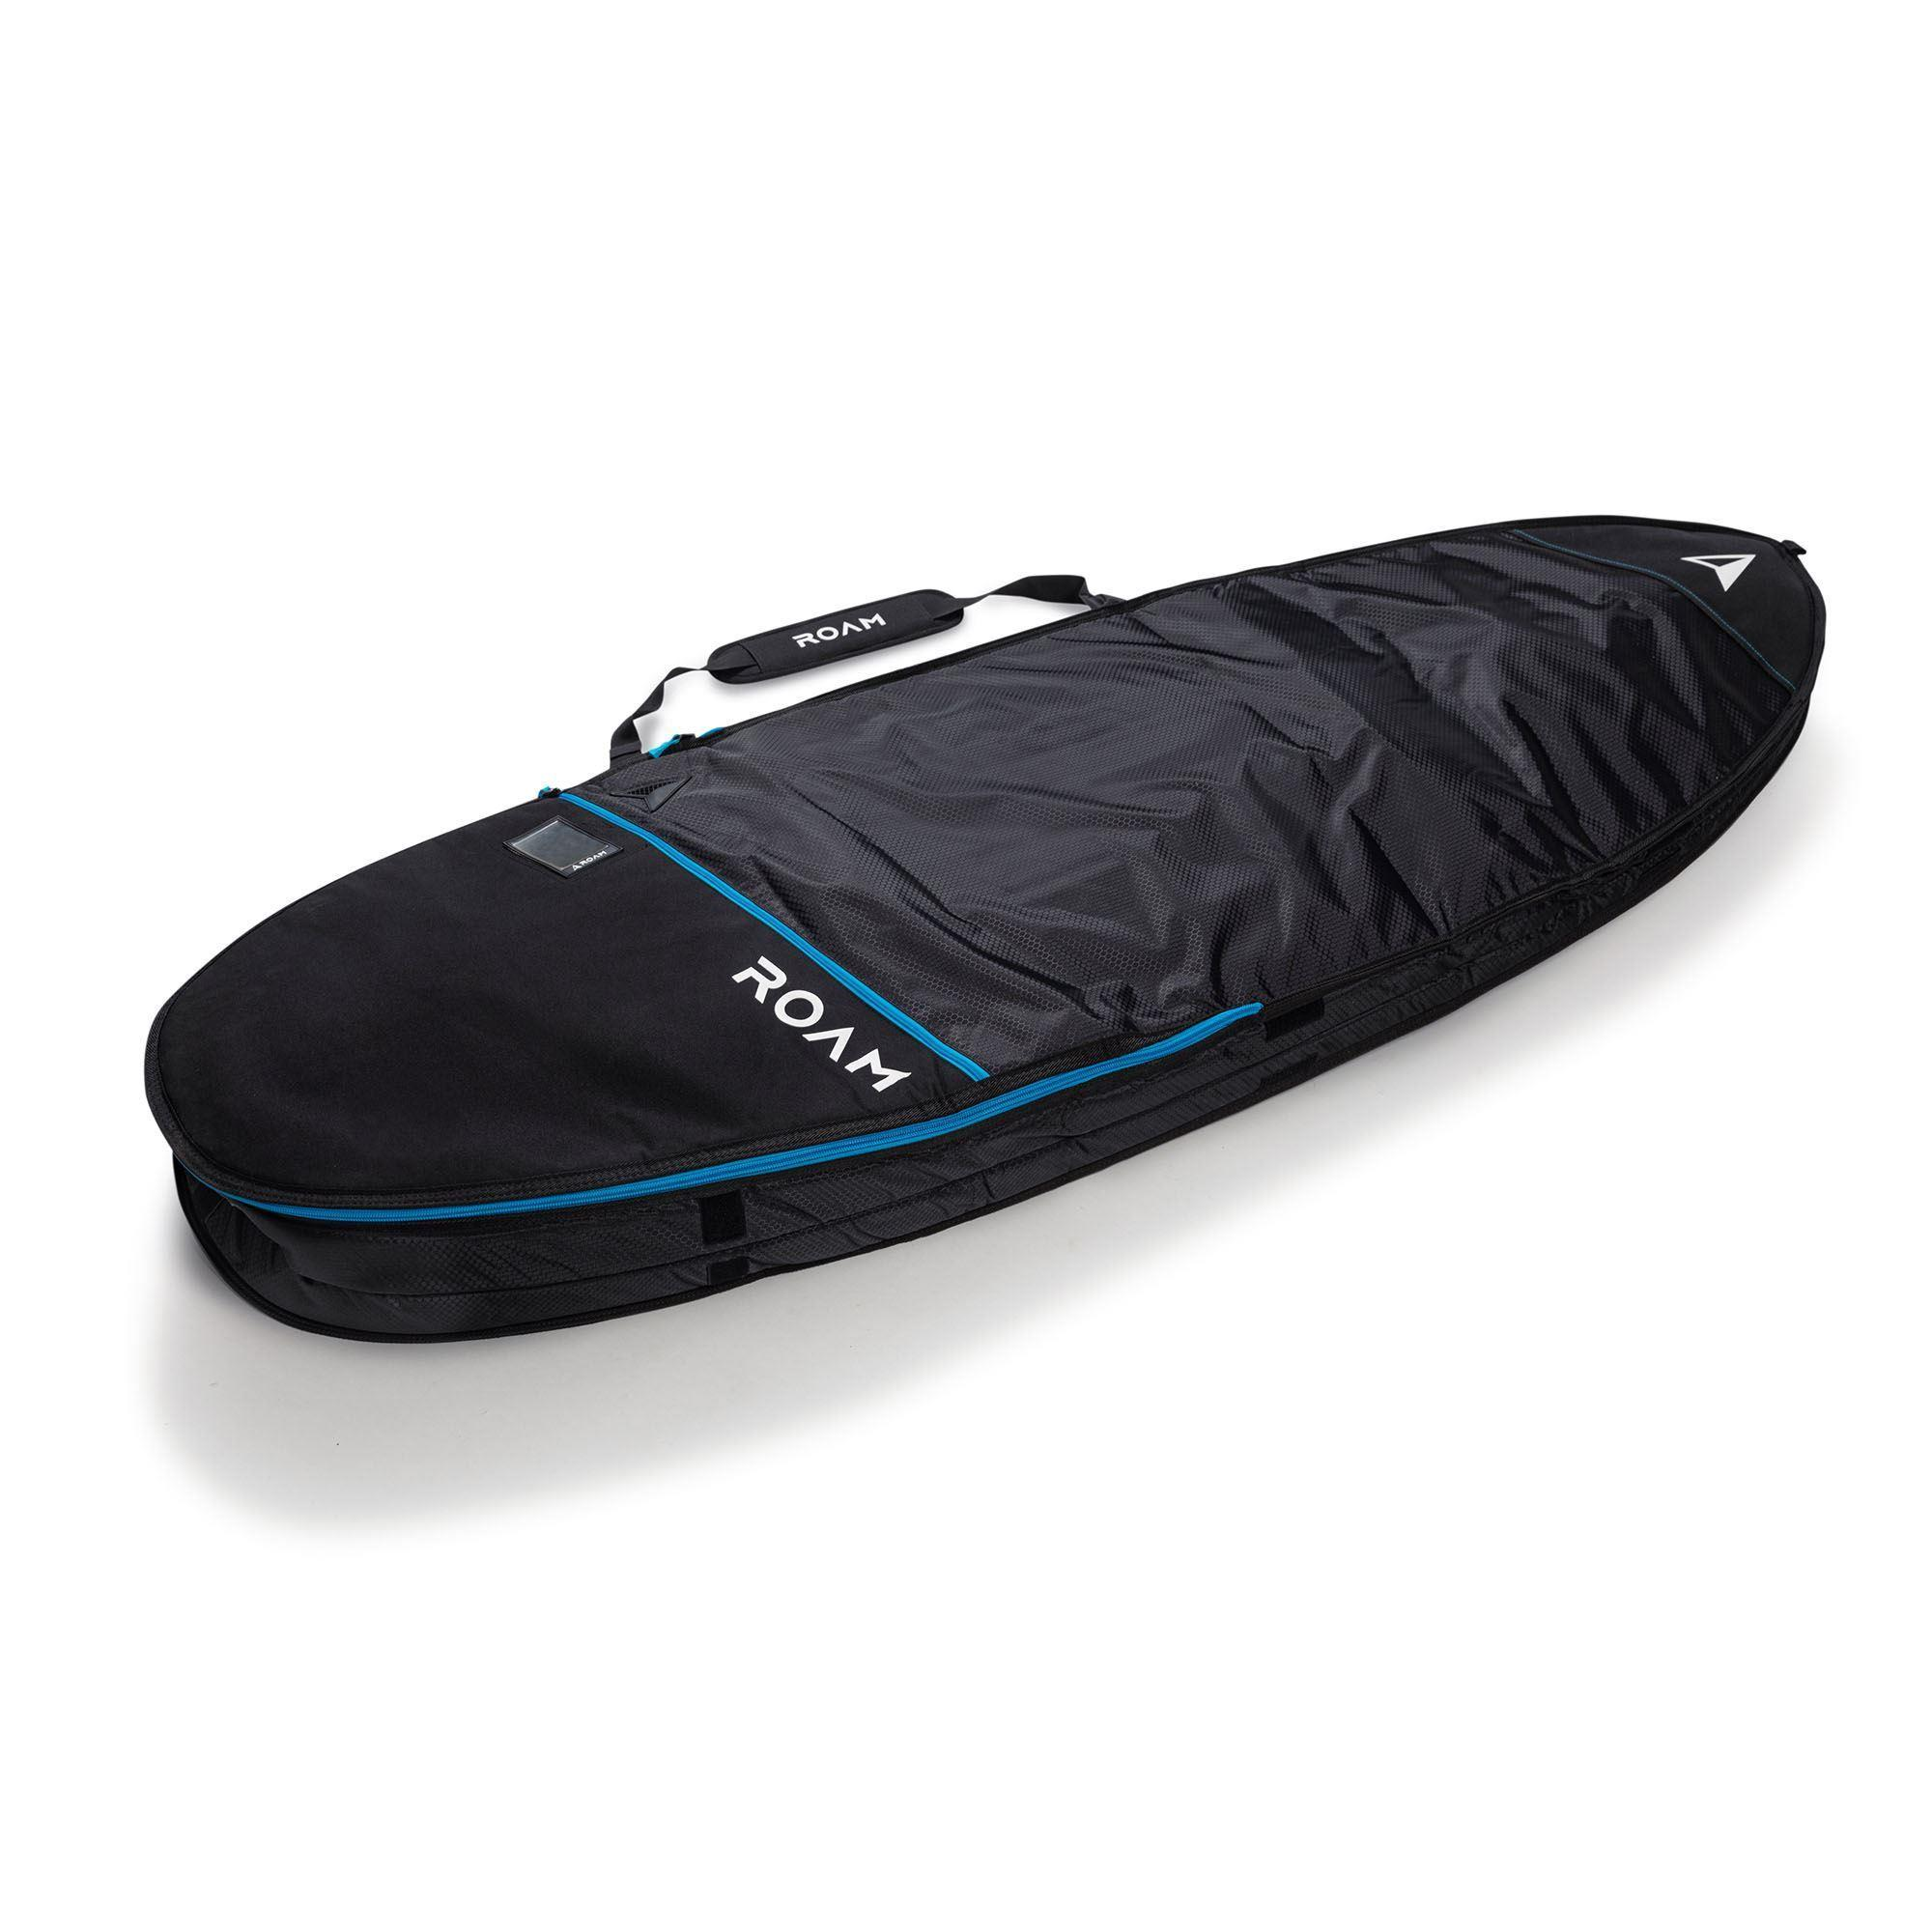 ROAM Boardbag Surfboard Tech Bag Doppel Fish 6.0